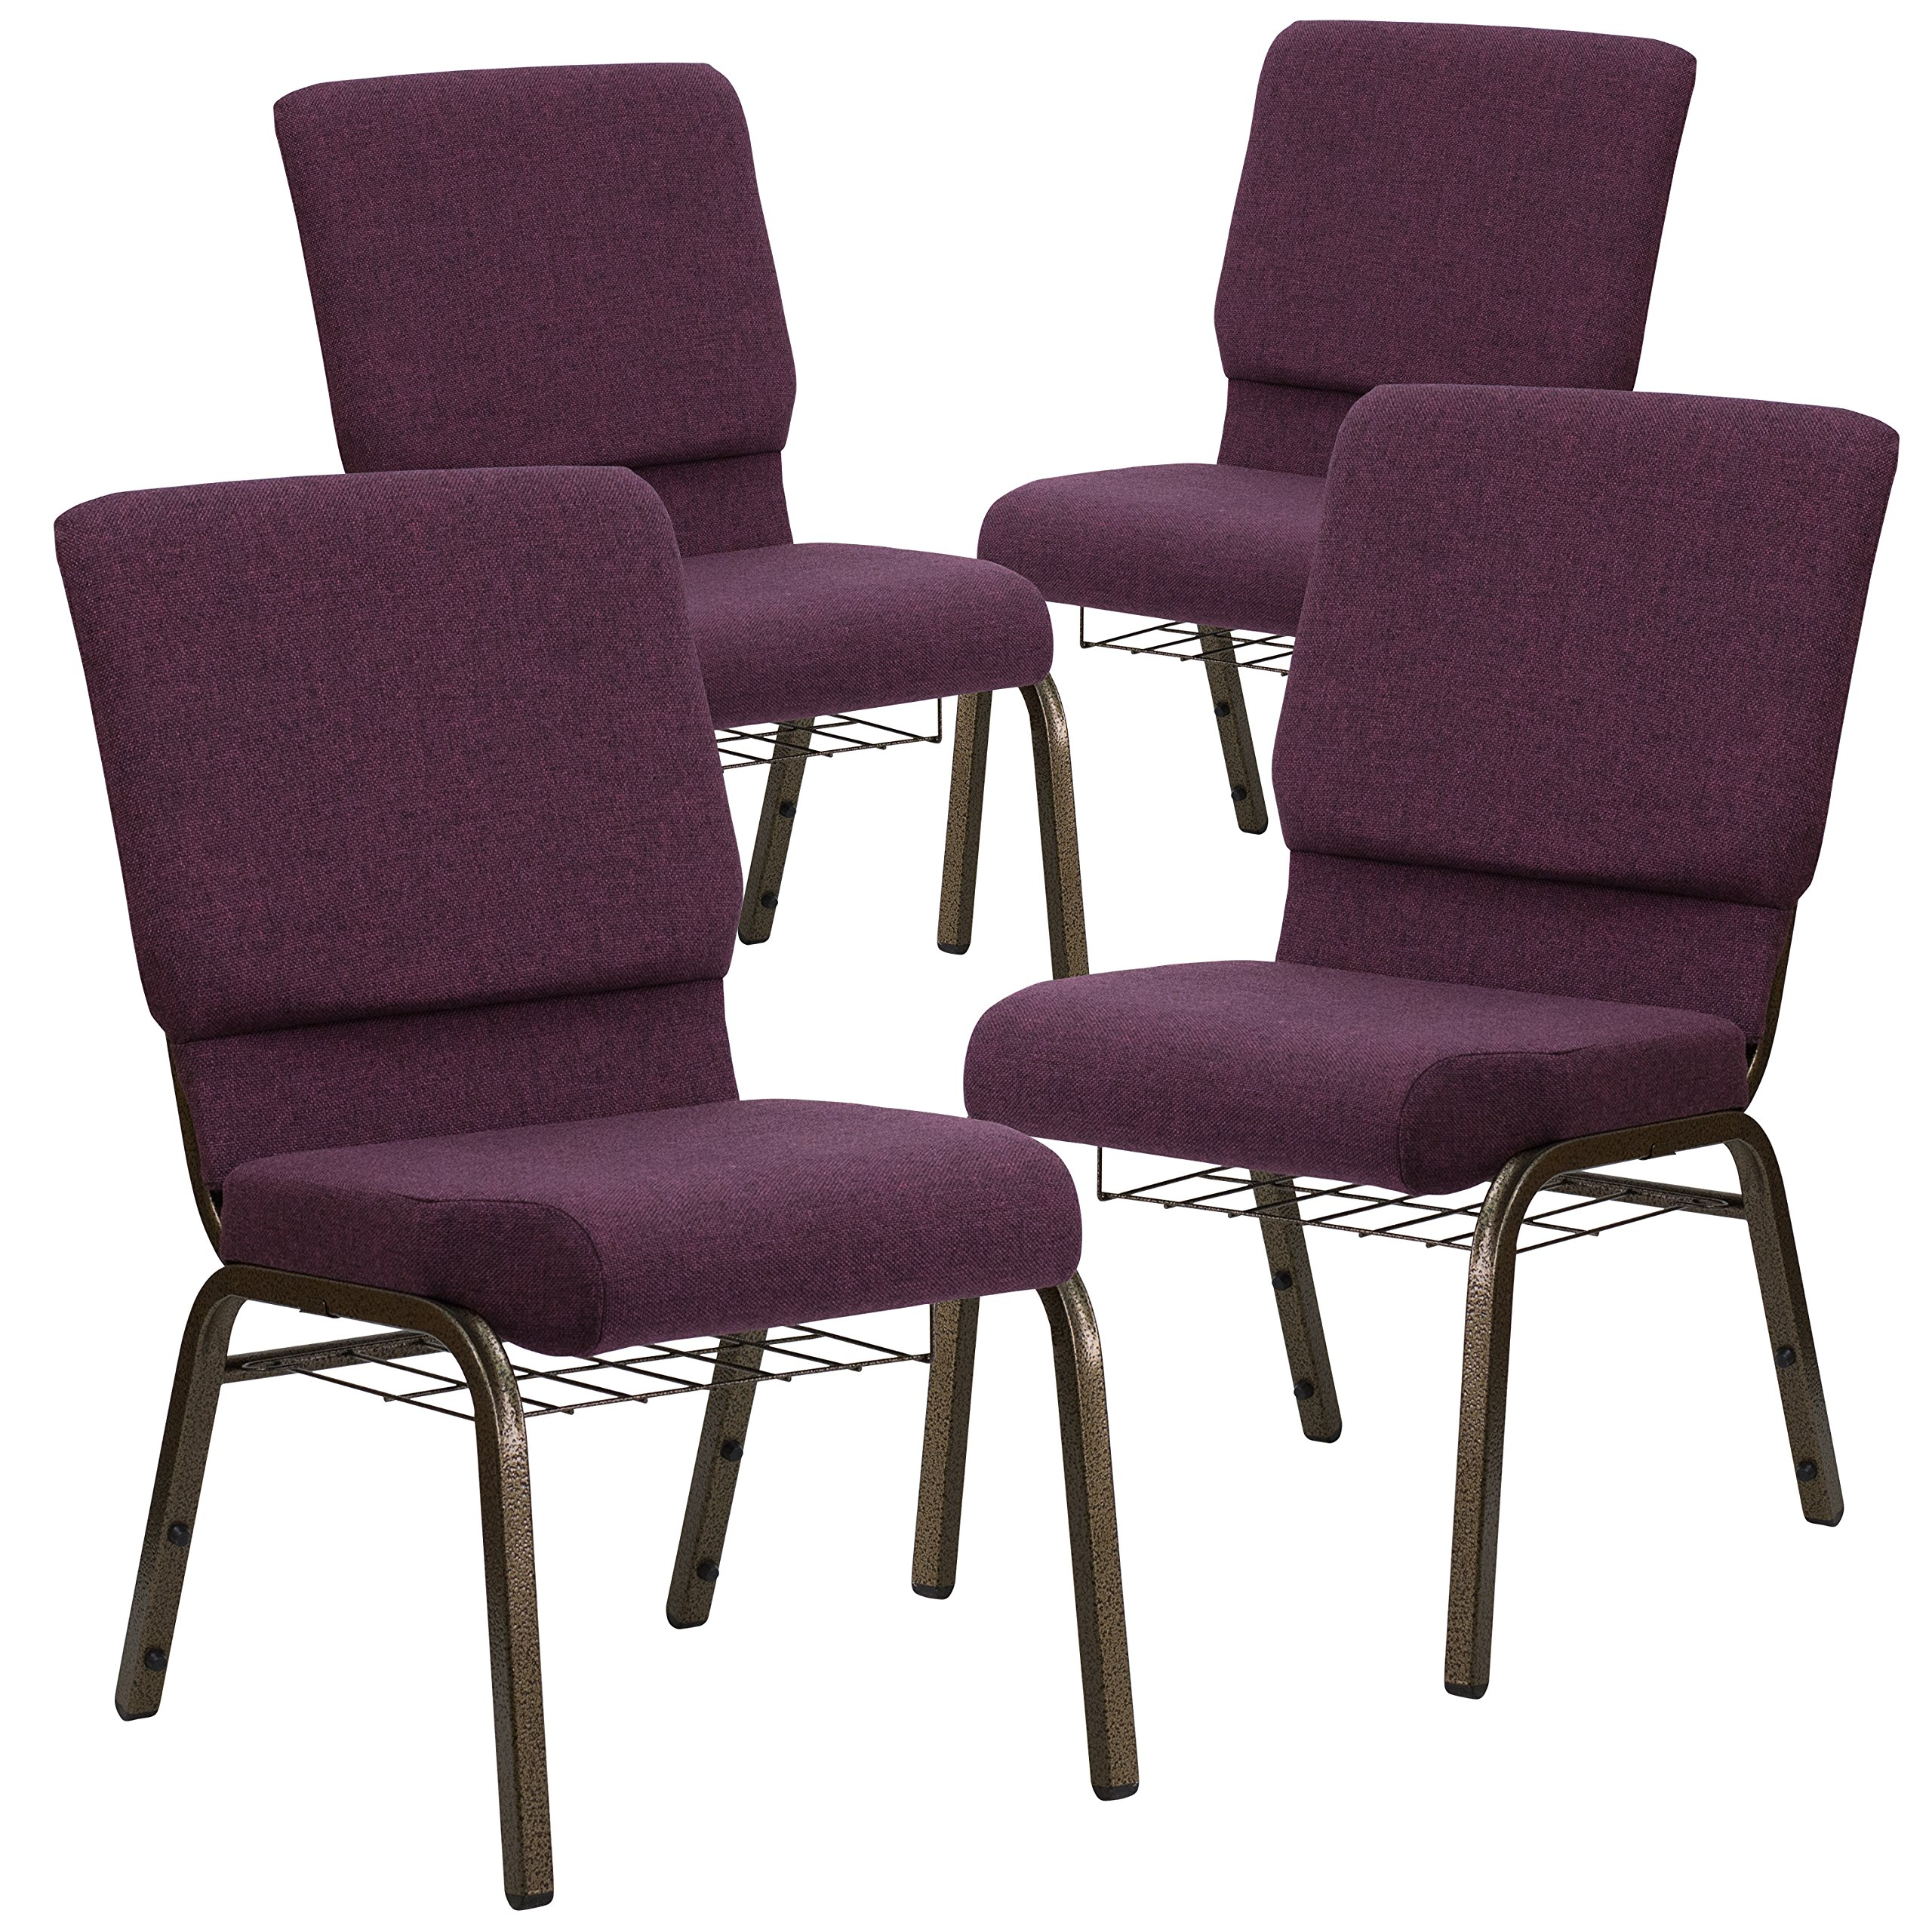 Flash Furniture 4 Pk. HERCULES Series 18.5''W Church Chair in Plum Fabric with Cup Book Rack - Gold Vein Frame